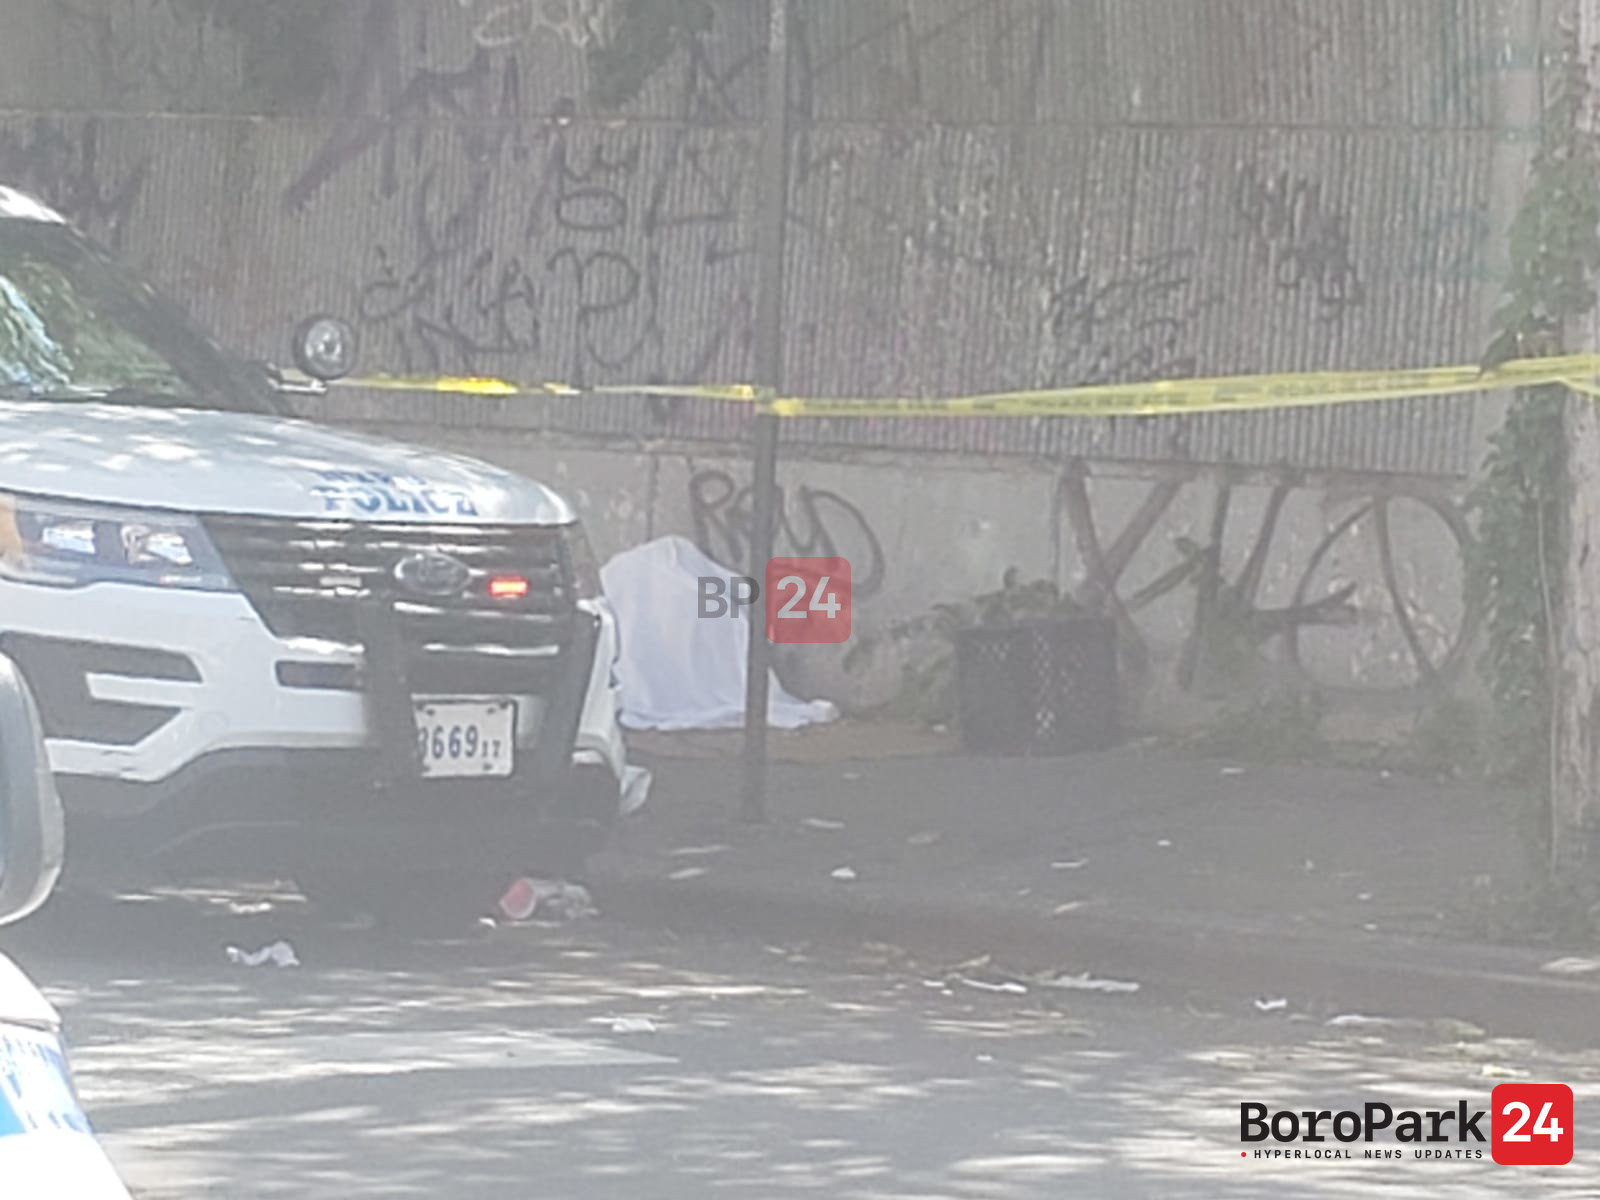 Fight Between Two Homeless Men Leaves One Dead